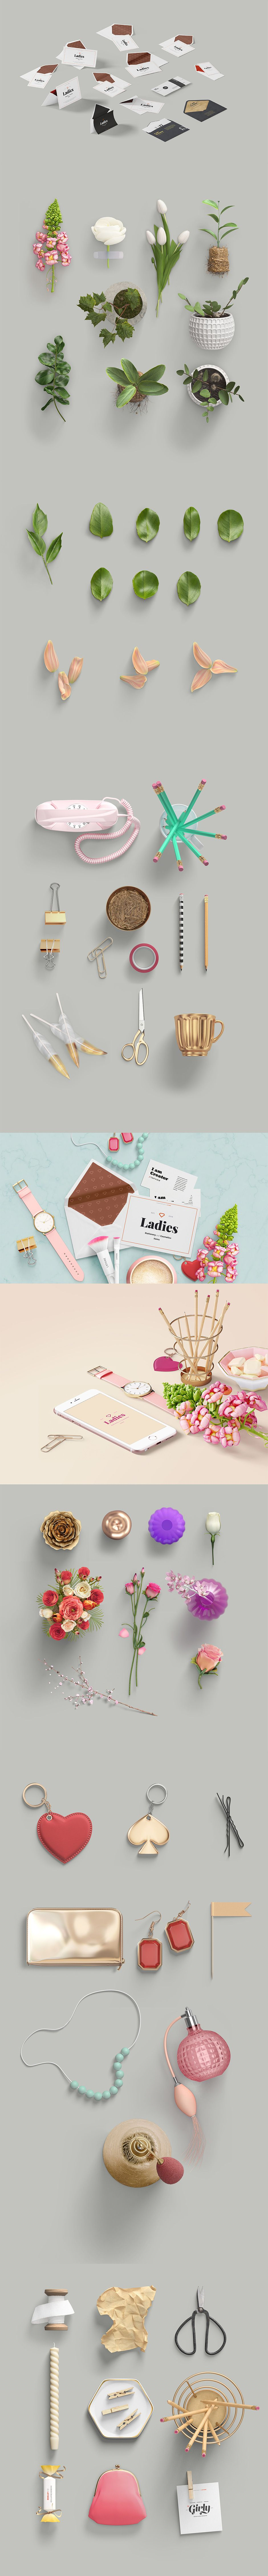 girly stationery mockup creator fave fonts graphics pinterest